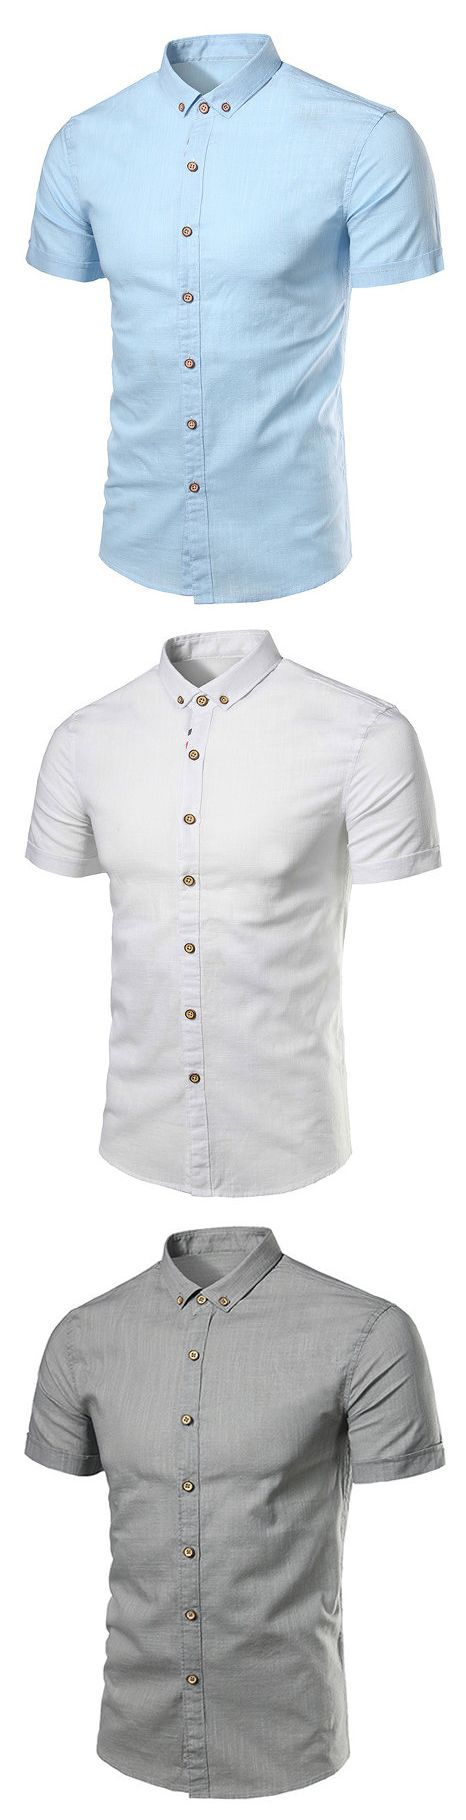 Casual Business Slim Fit Pure Color Cotton Short Sleeve Dress Shirts for Men